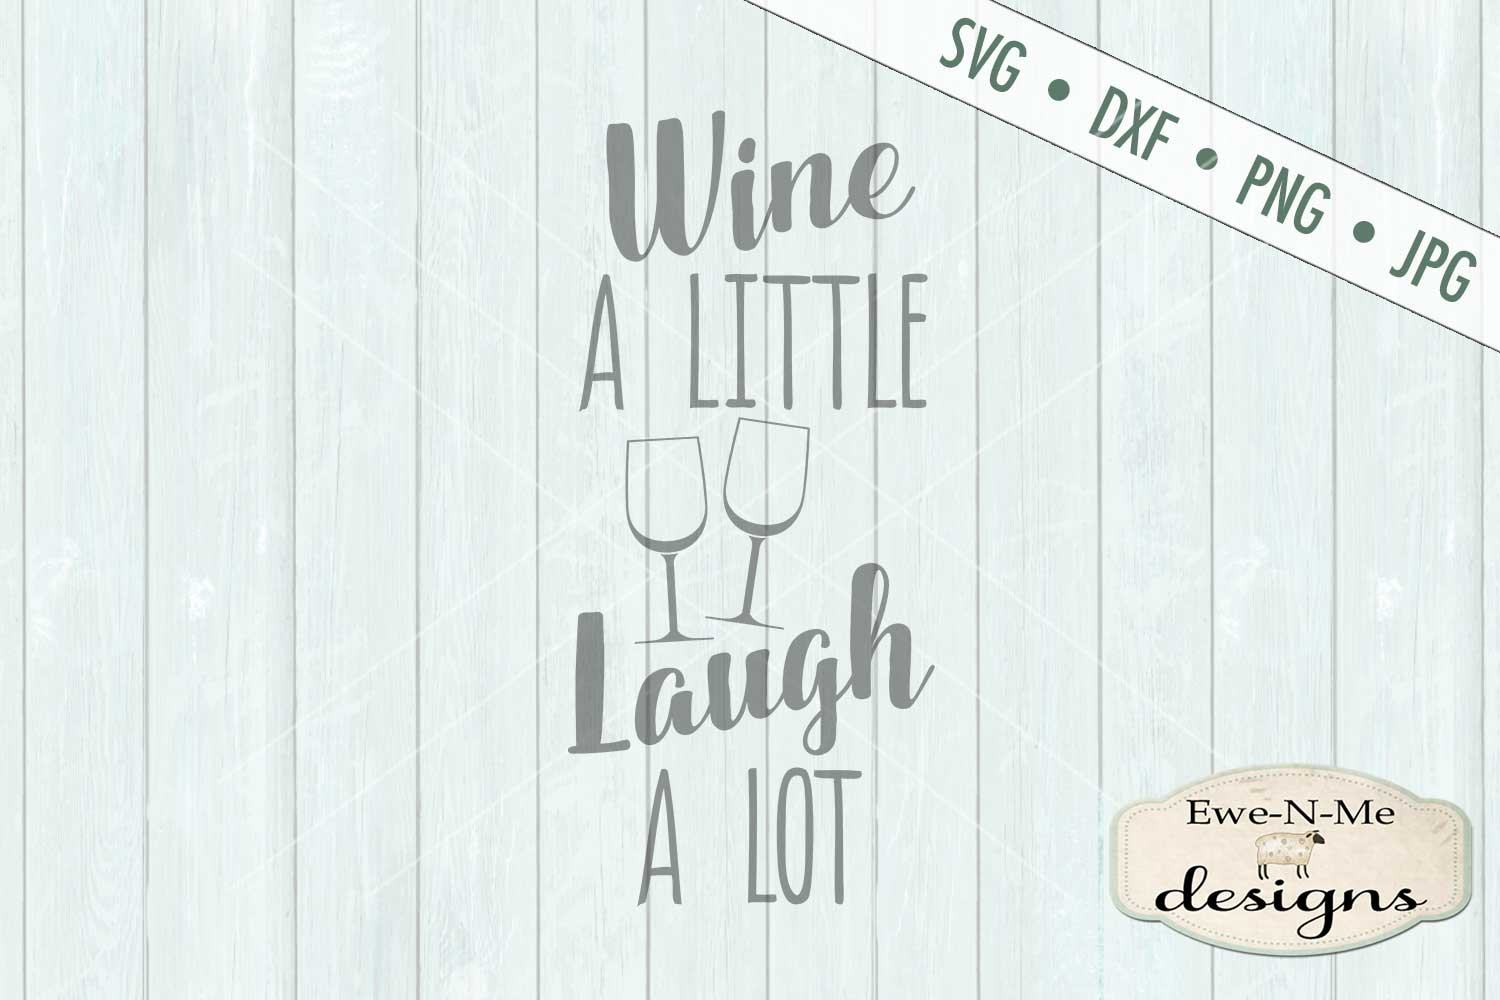 Wine A Little Laugh A Lot - Wine Bag - SVG DXF Files example image 2